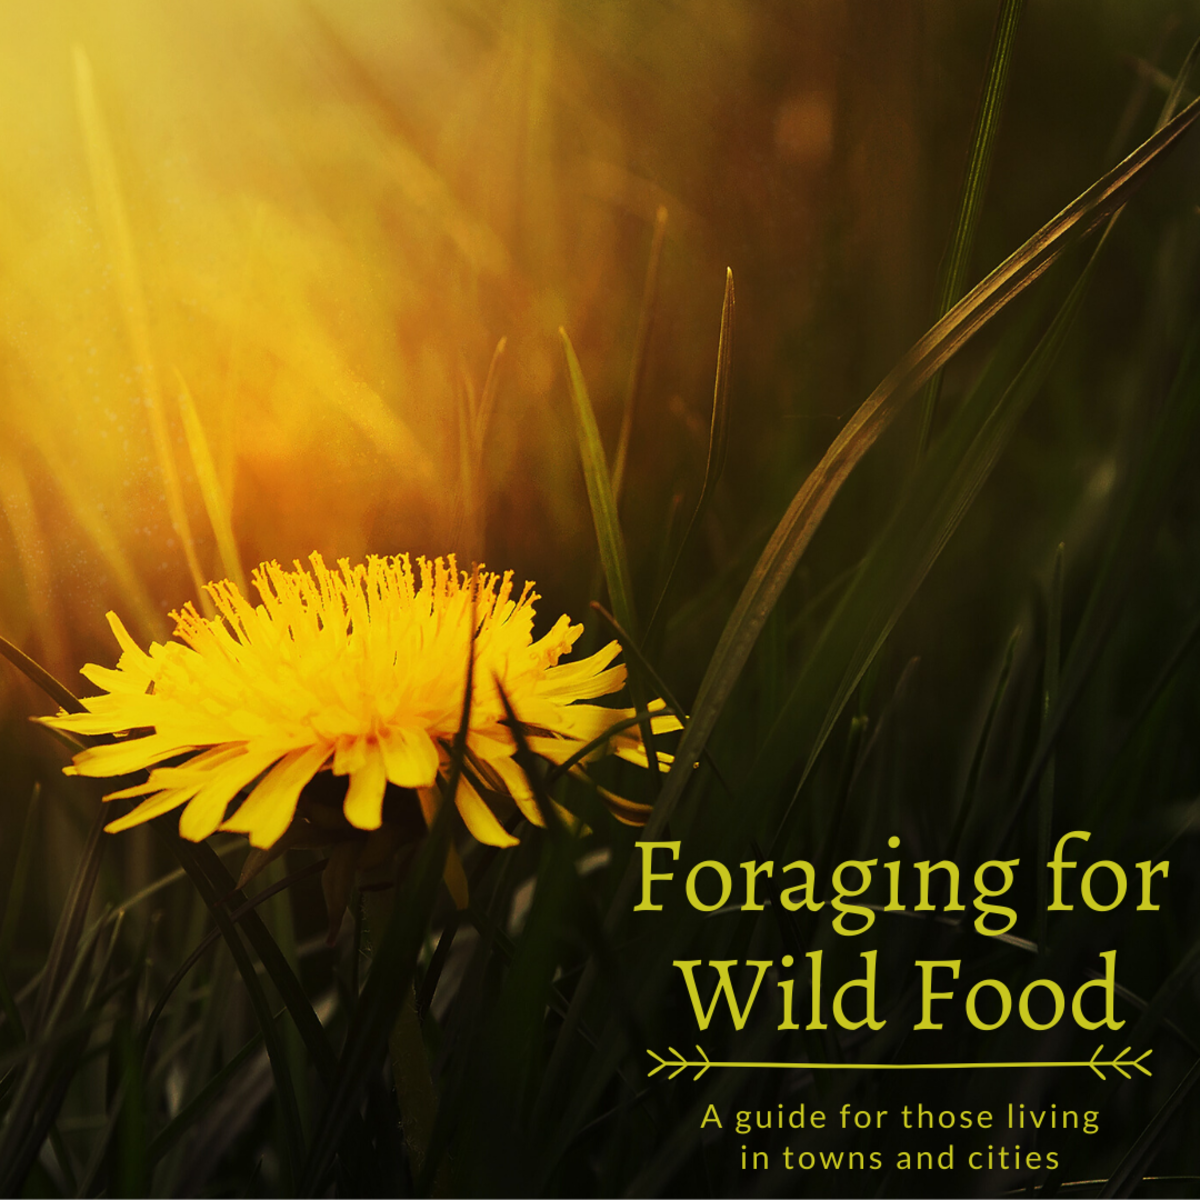 How to Forage for Wild Food in Towns and Cities